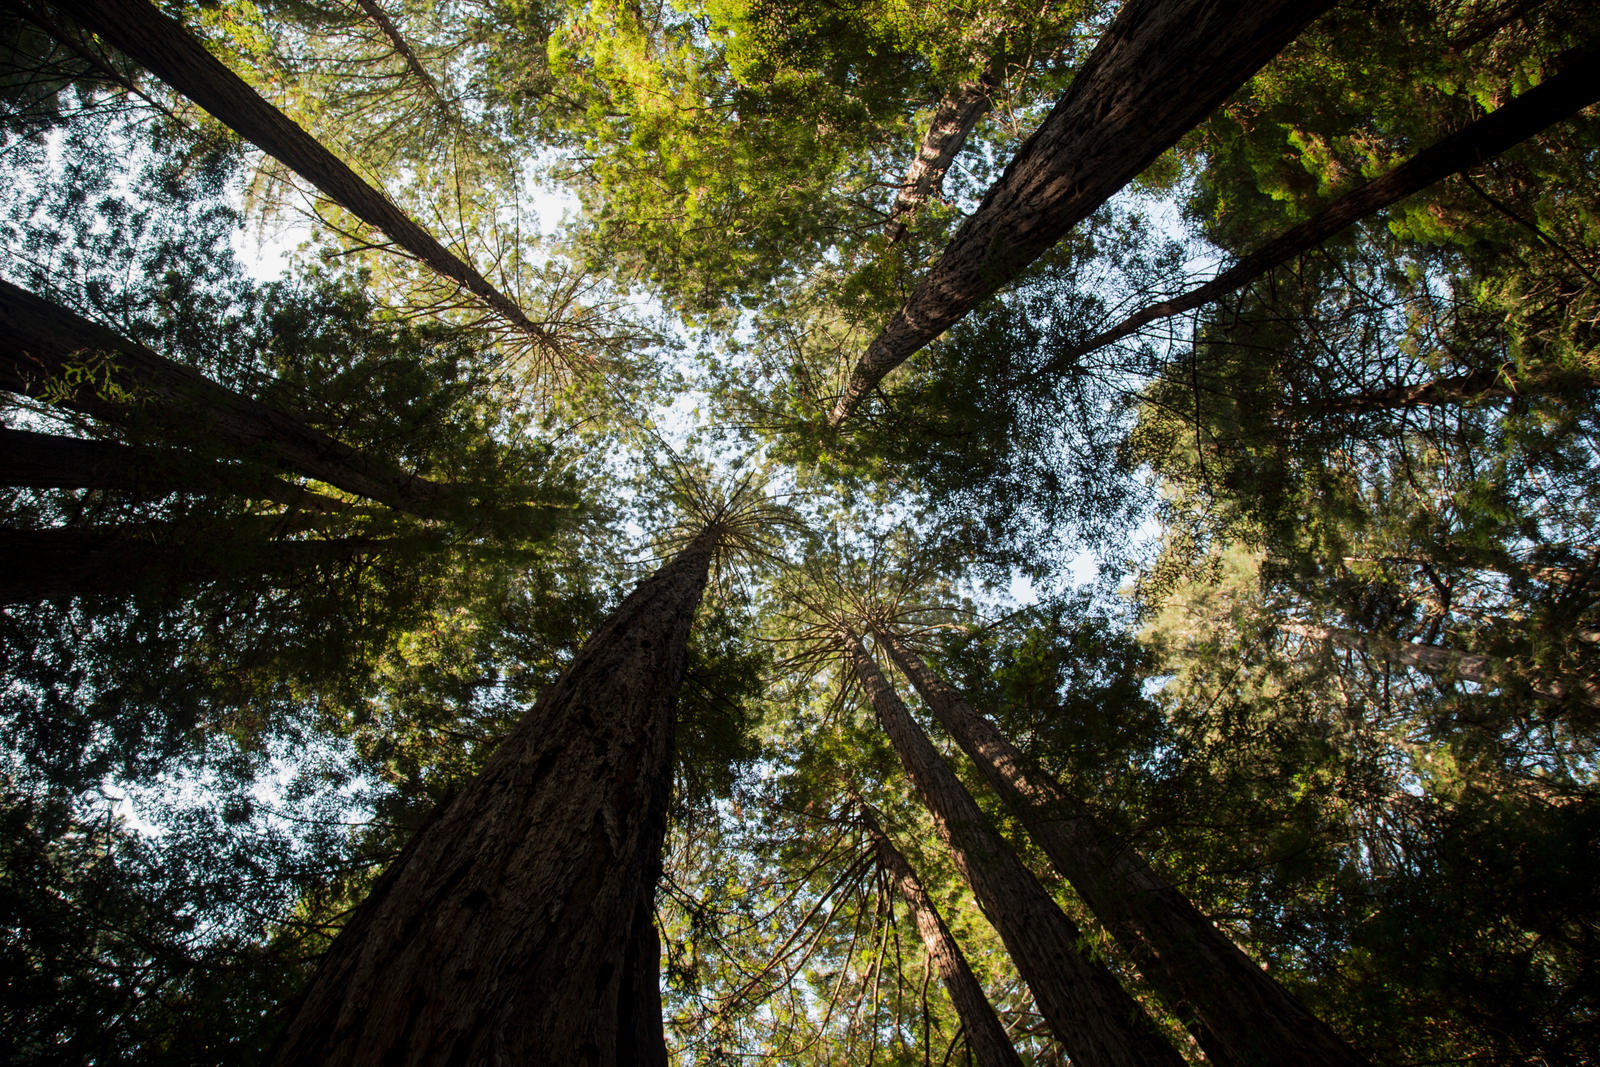 Muir Woods by rmh7069